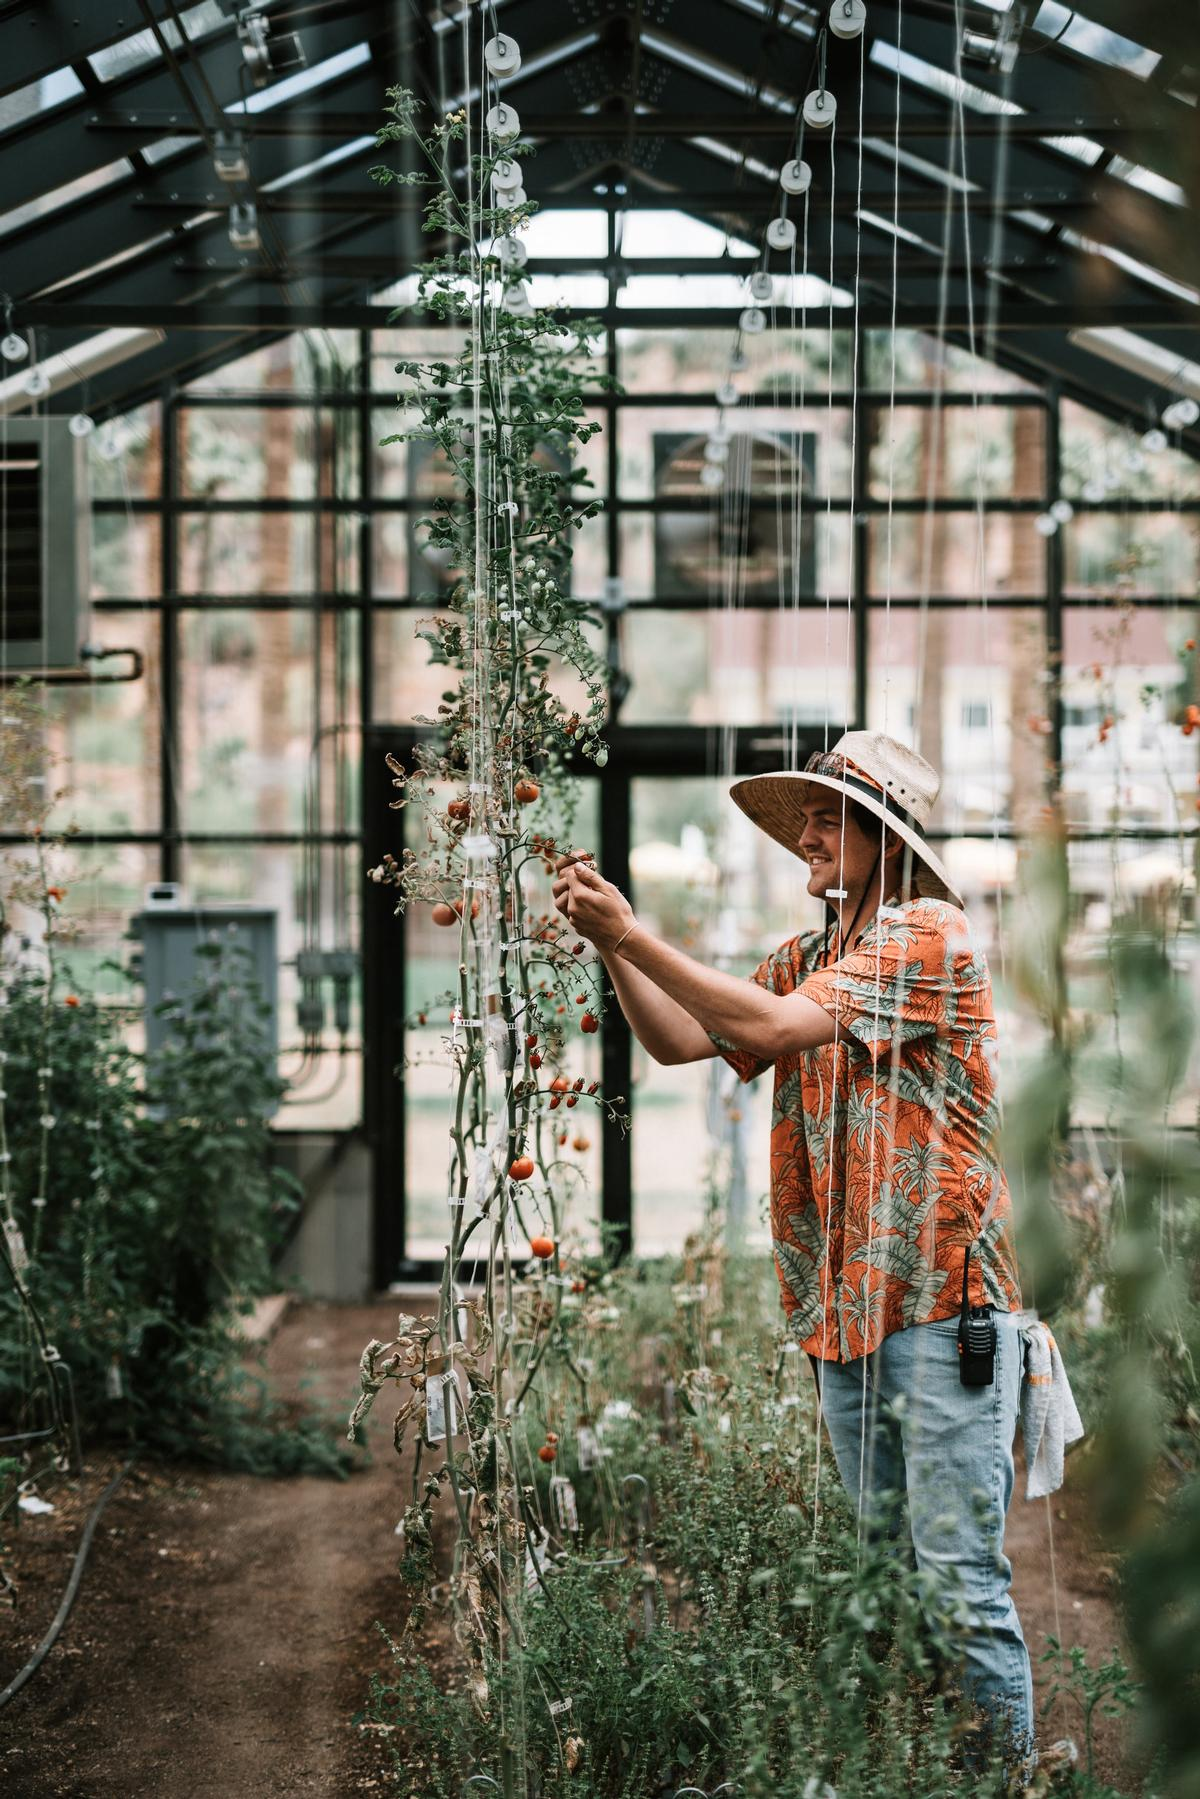 At the property's greenhouse and one-acre farm, more than 150 varieties of fruits and vegetables (including over 30 varieties of heirloom tomatoes) native to the desert are grown / Castle Hot Springs